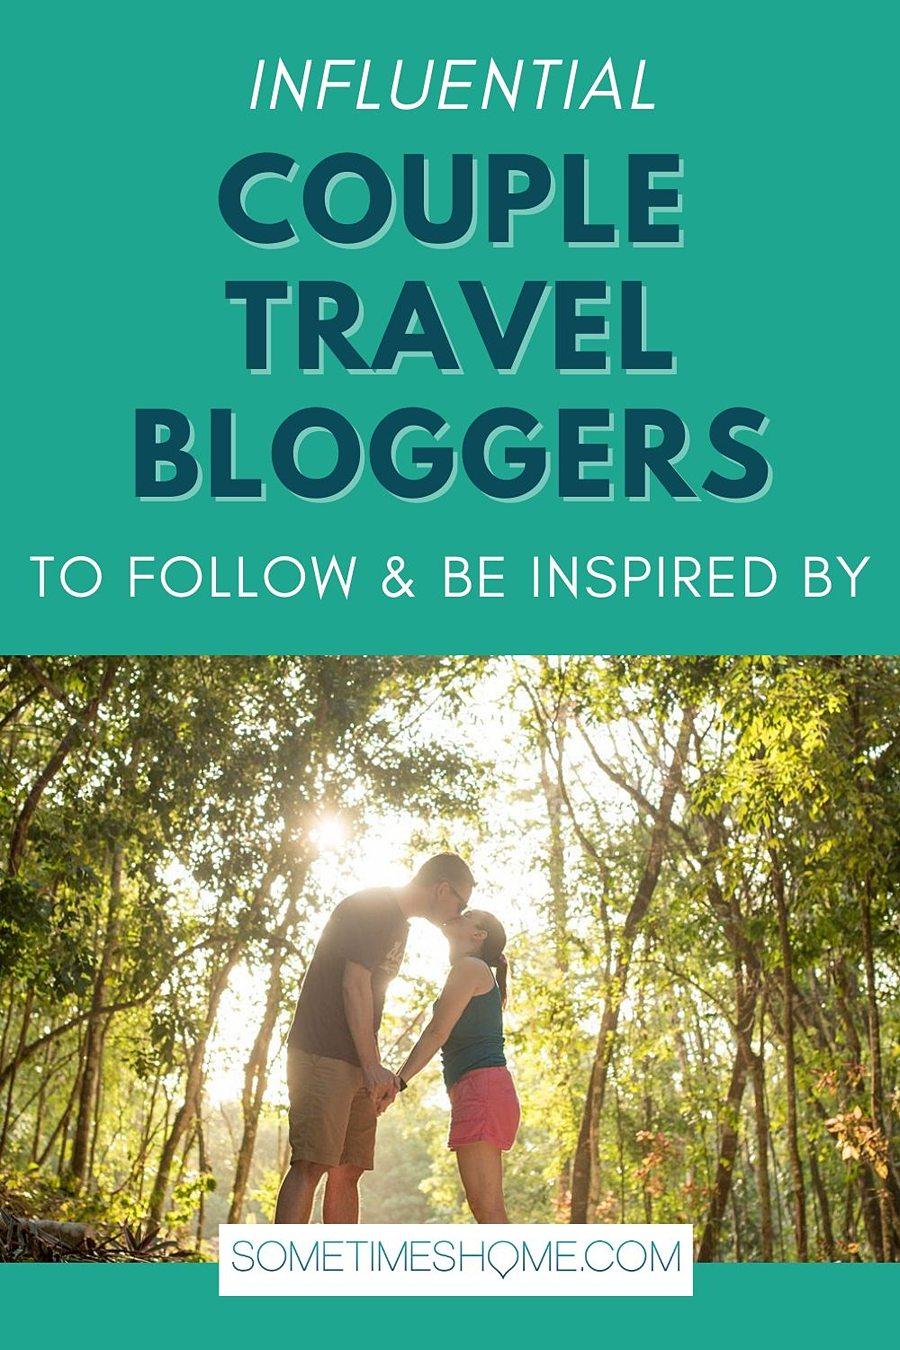 Couple Travel Bloggers to follow and get inspired by text, with a photo of a couple kissing in the sunshine in a jungle.